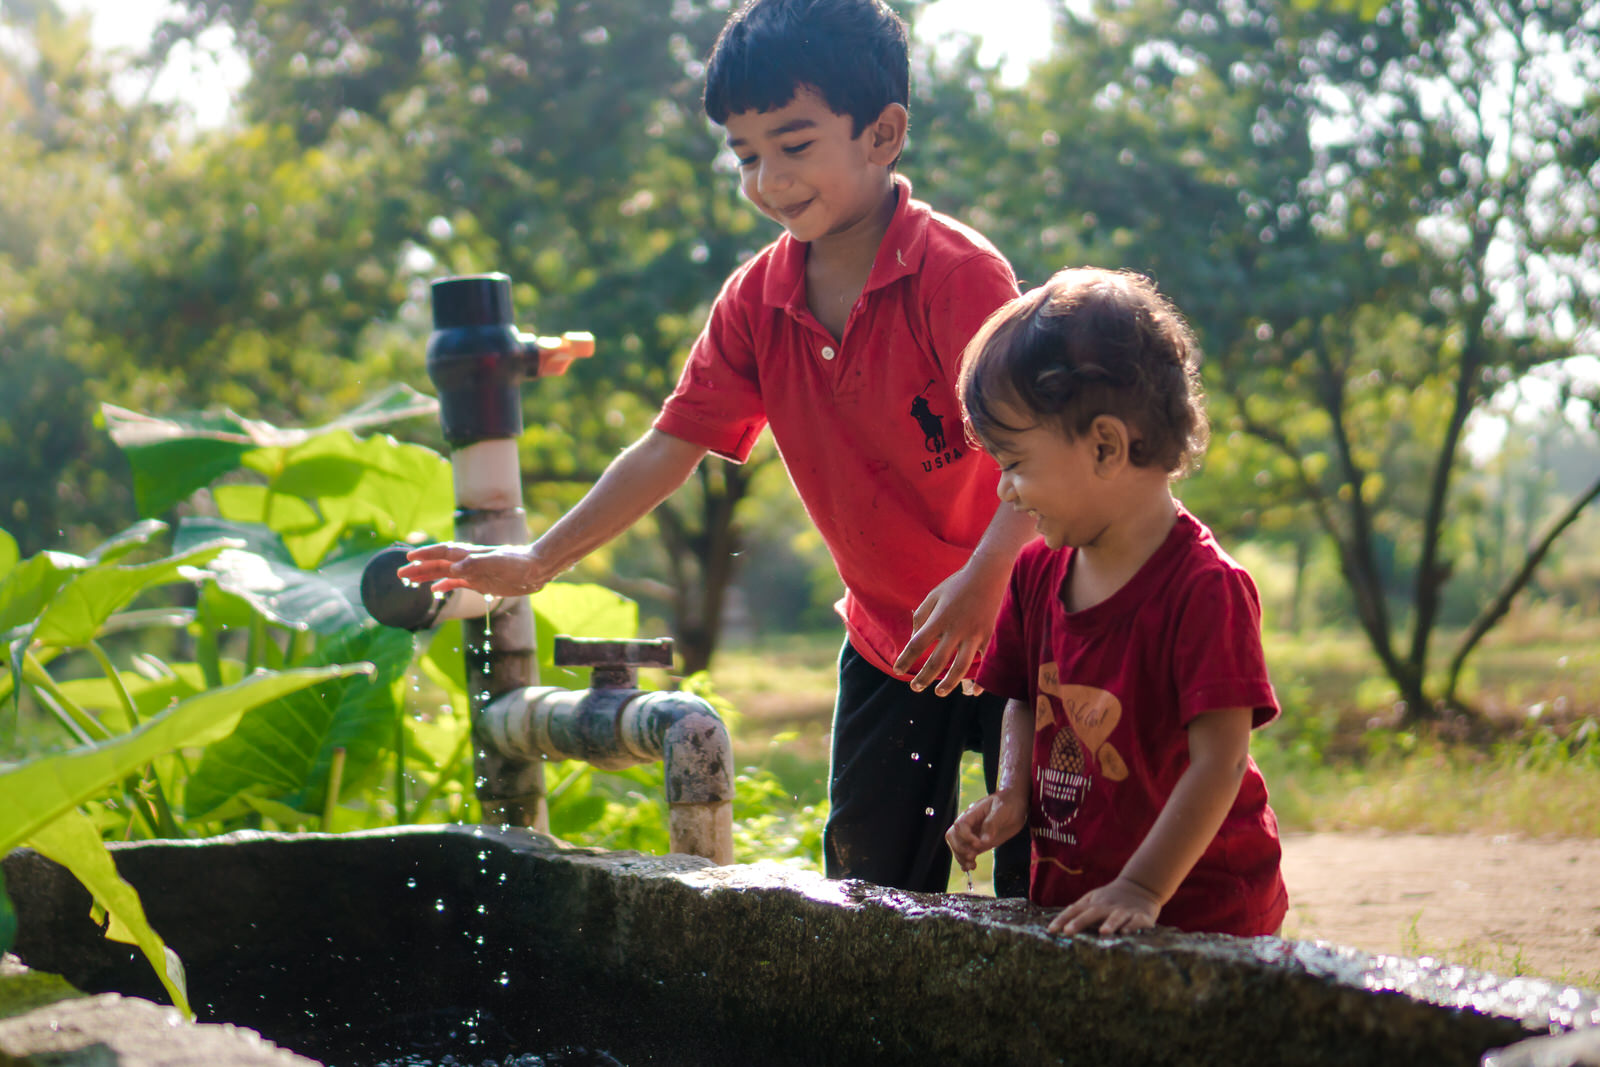 23122017-Boys-Playing-Water-Tank-141.jpg